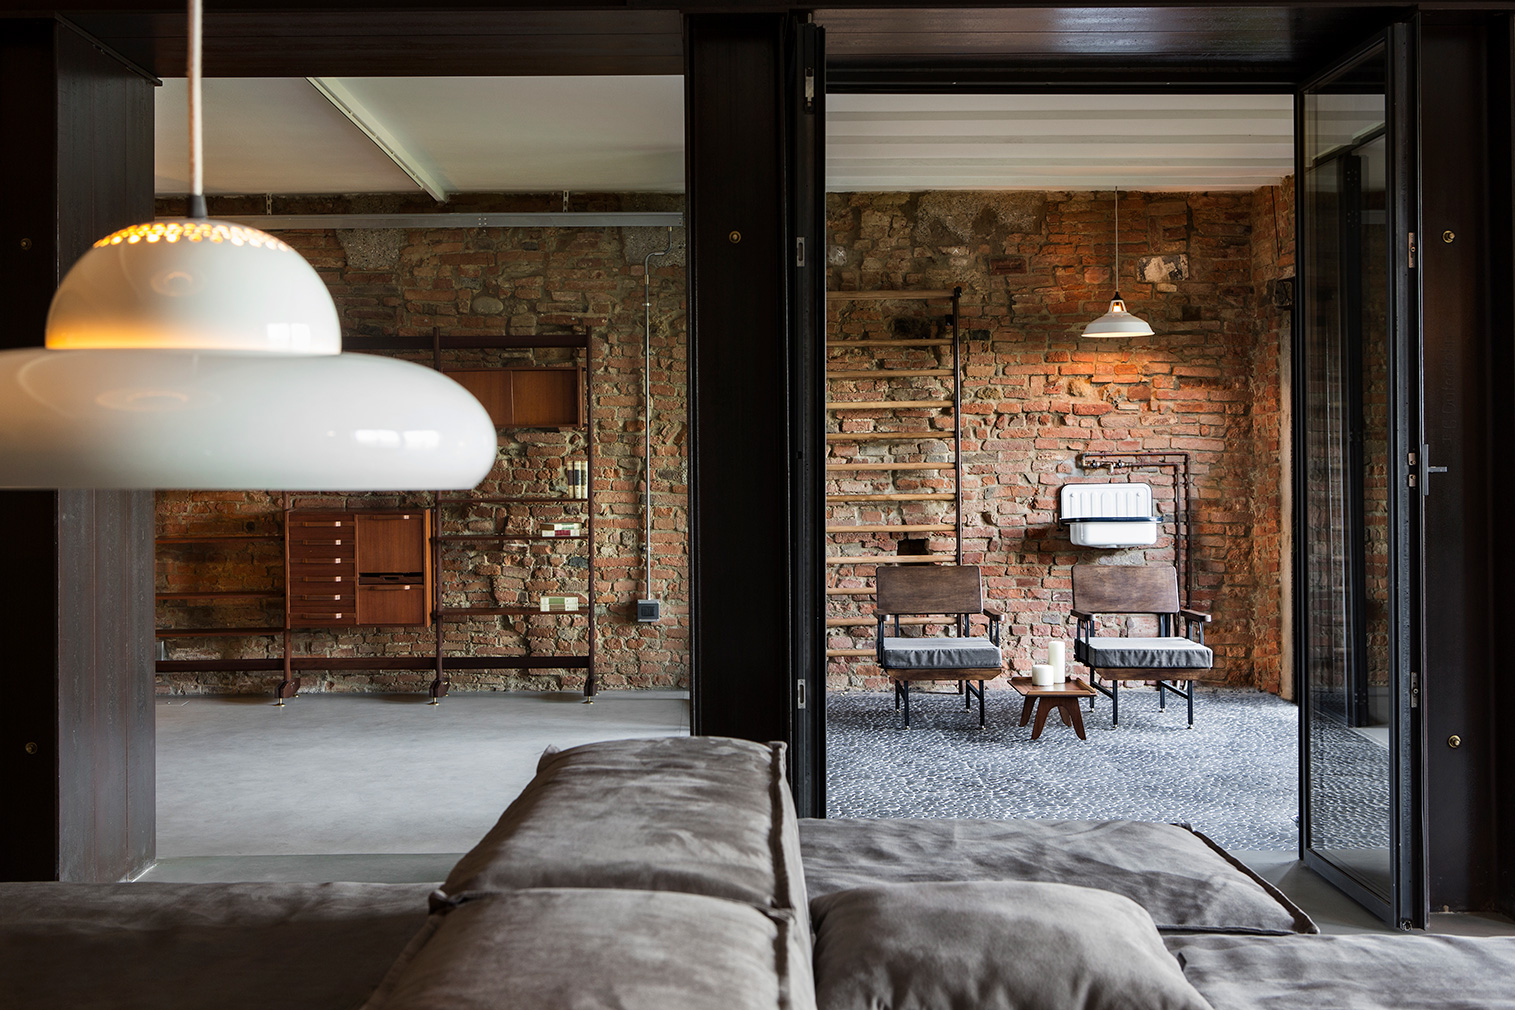 Its owner carved up the space using steel framed glass partitions